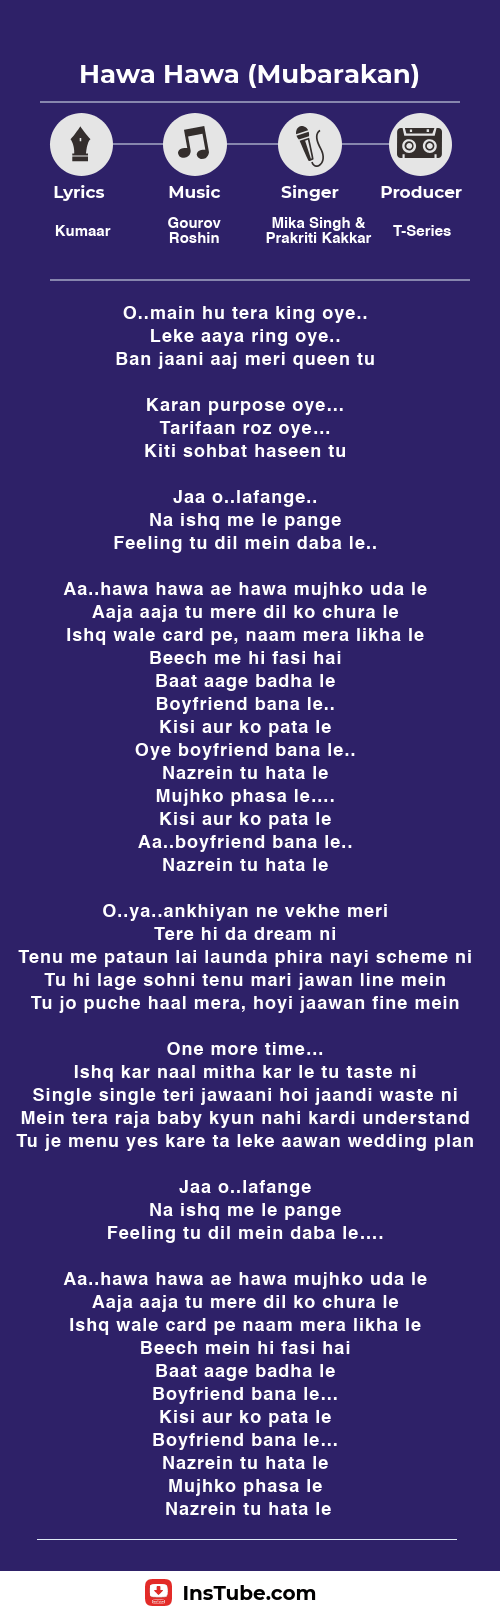 Hawa Hawa song lyrics Mubarakan film